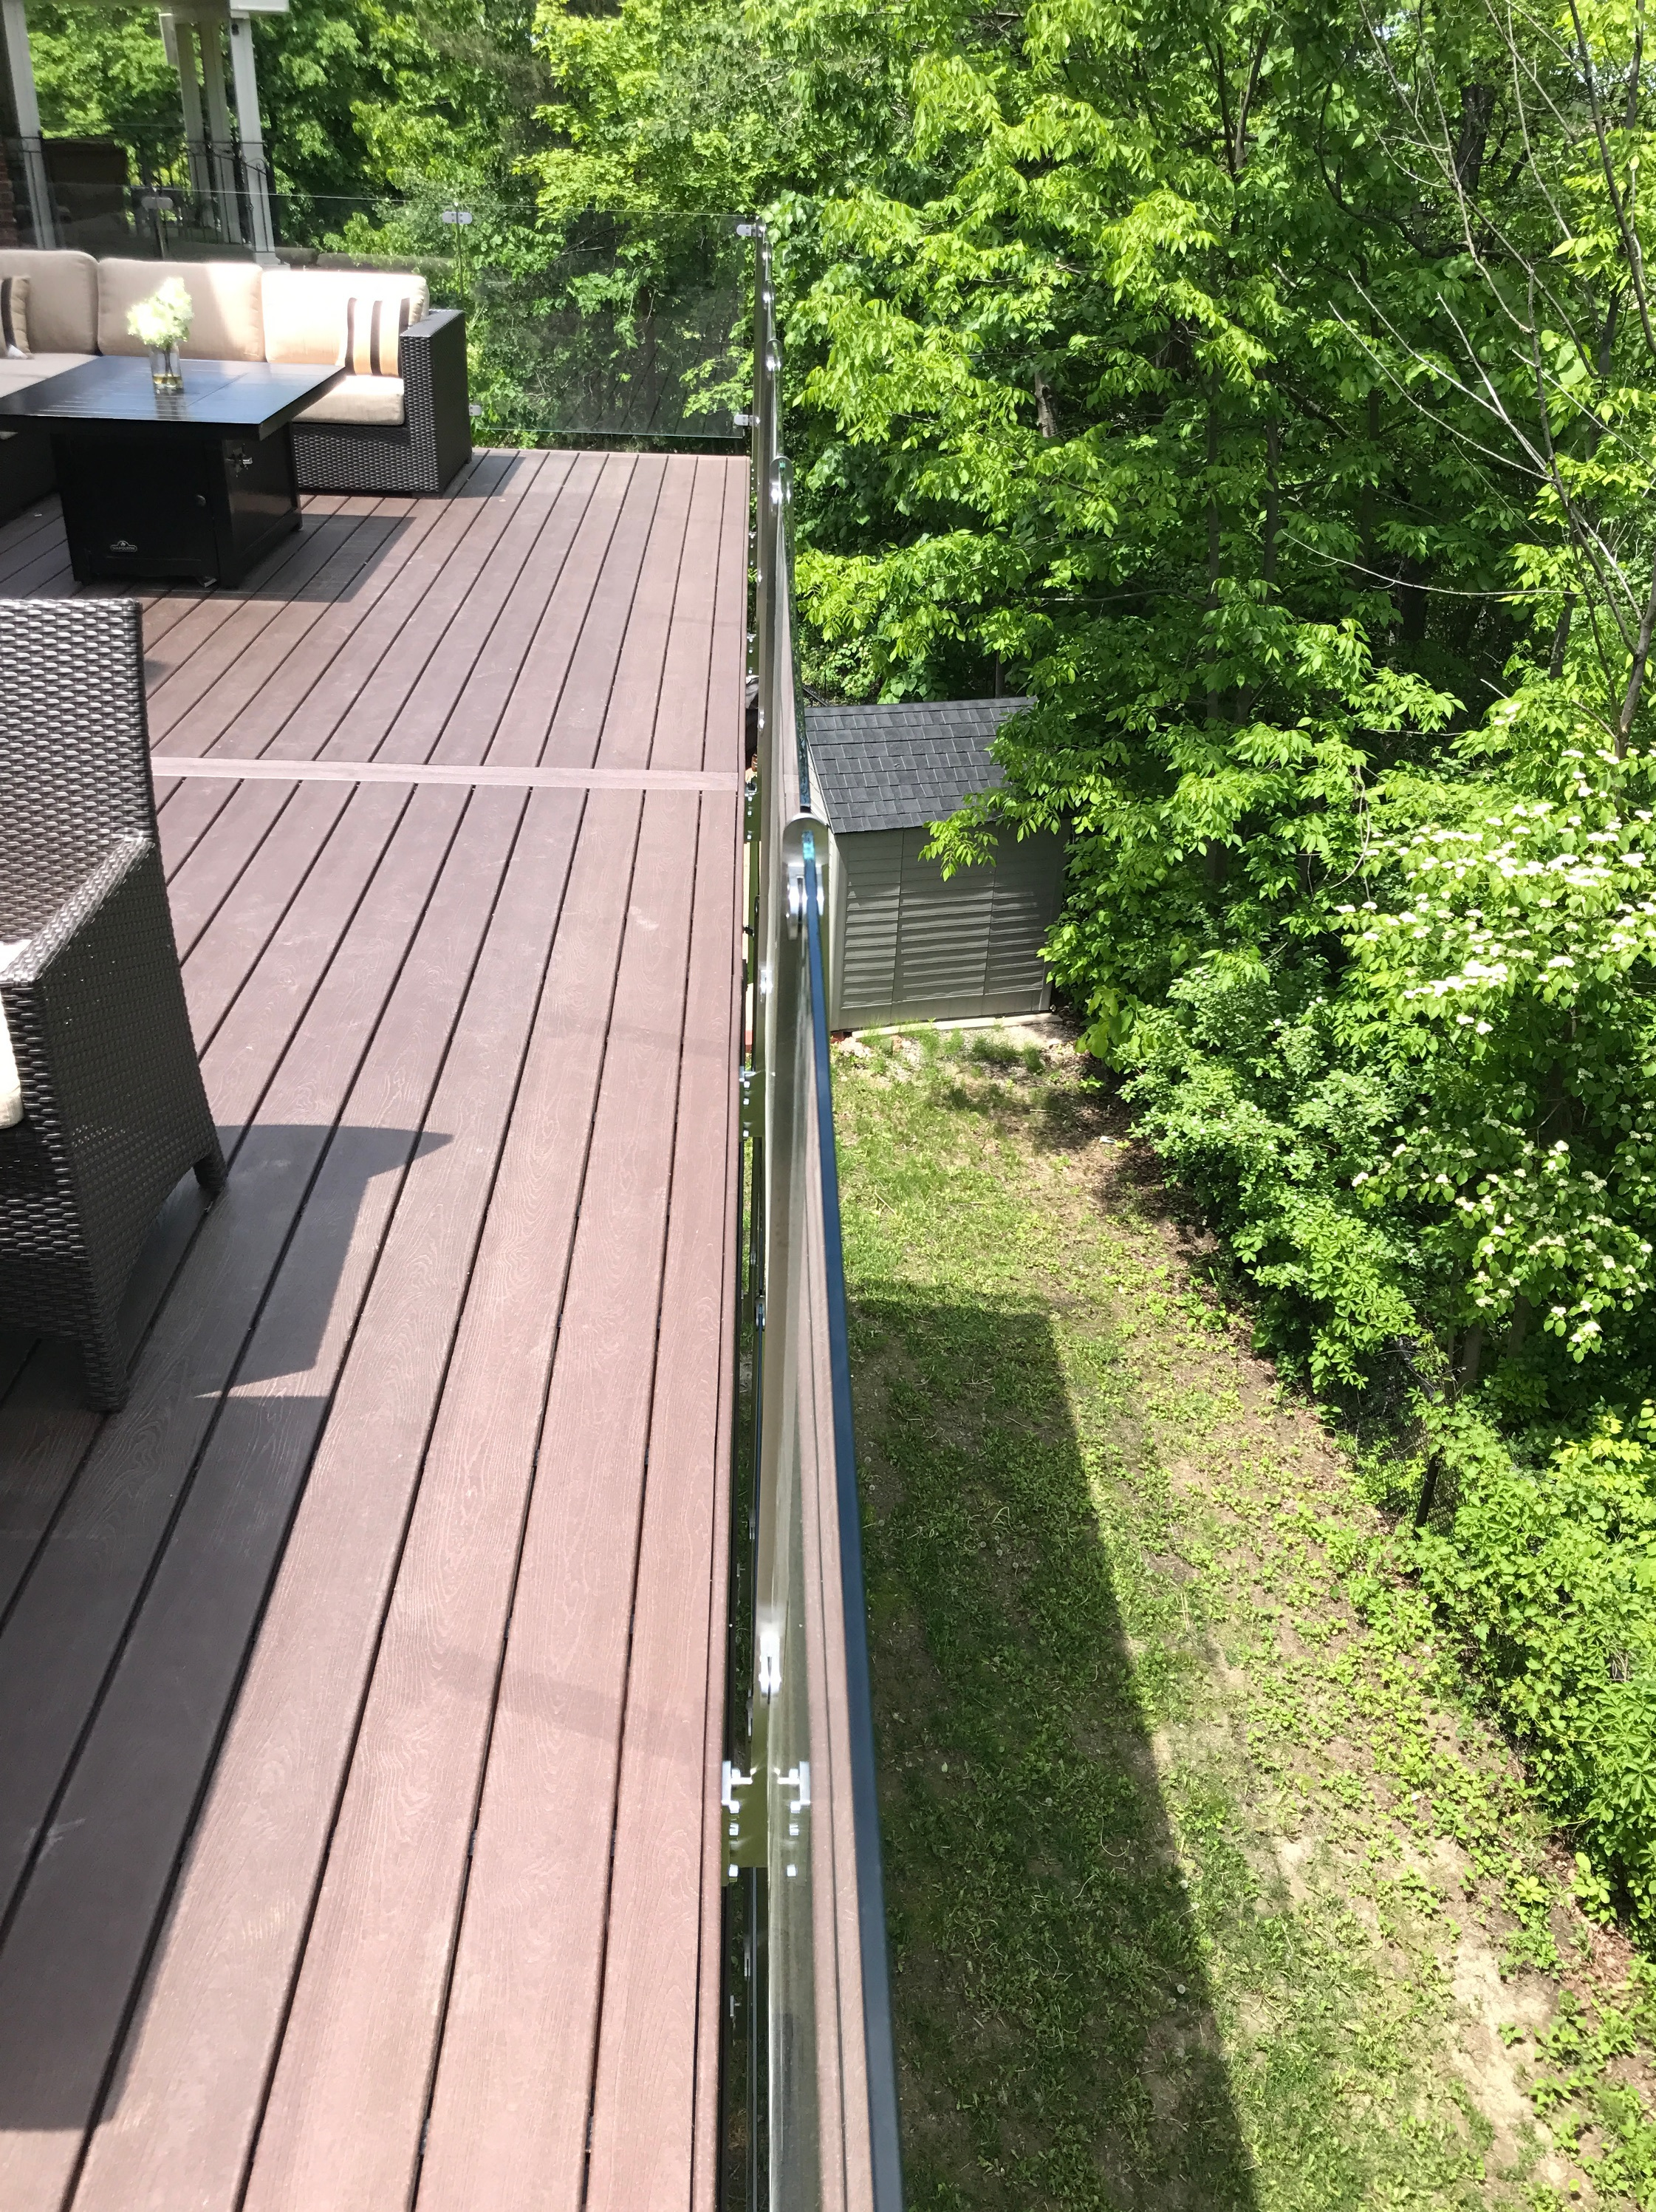 RH Elevated Deck - View over Guard